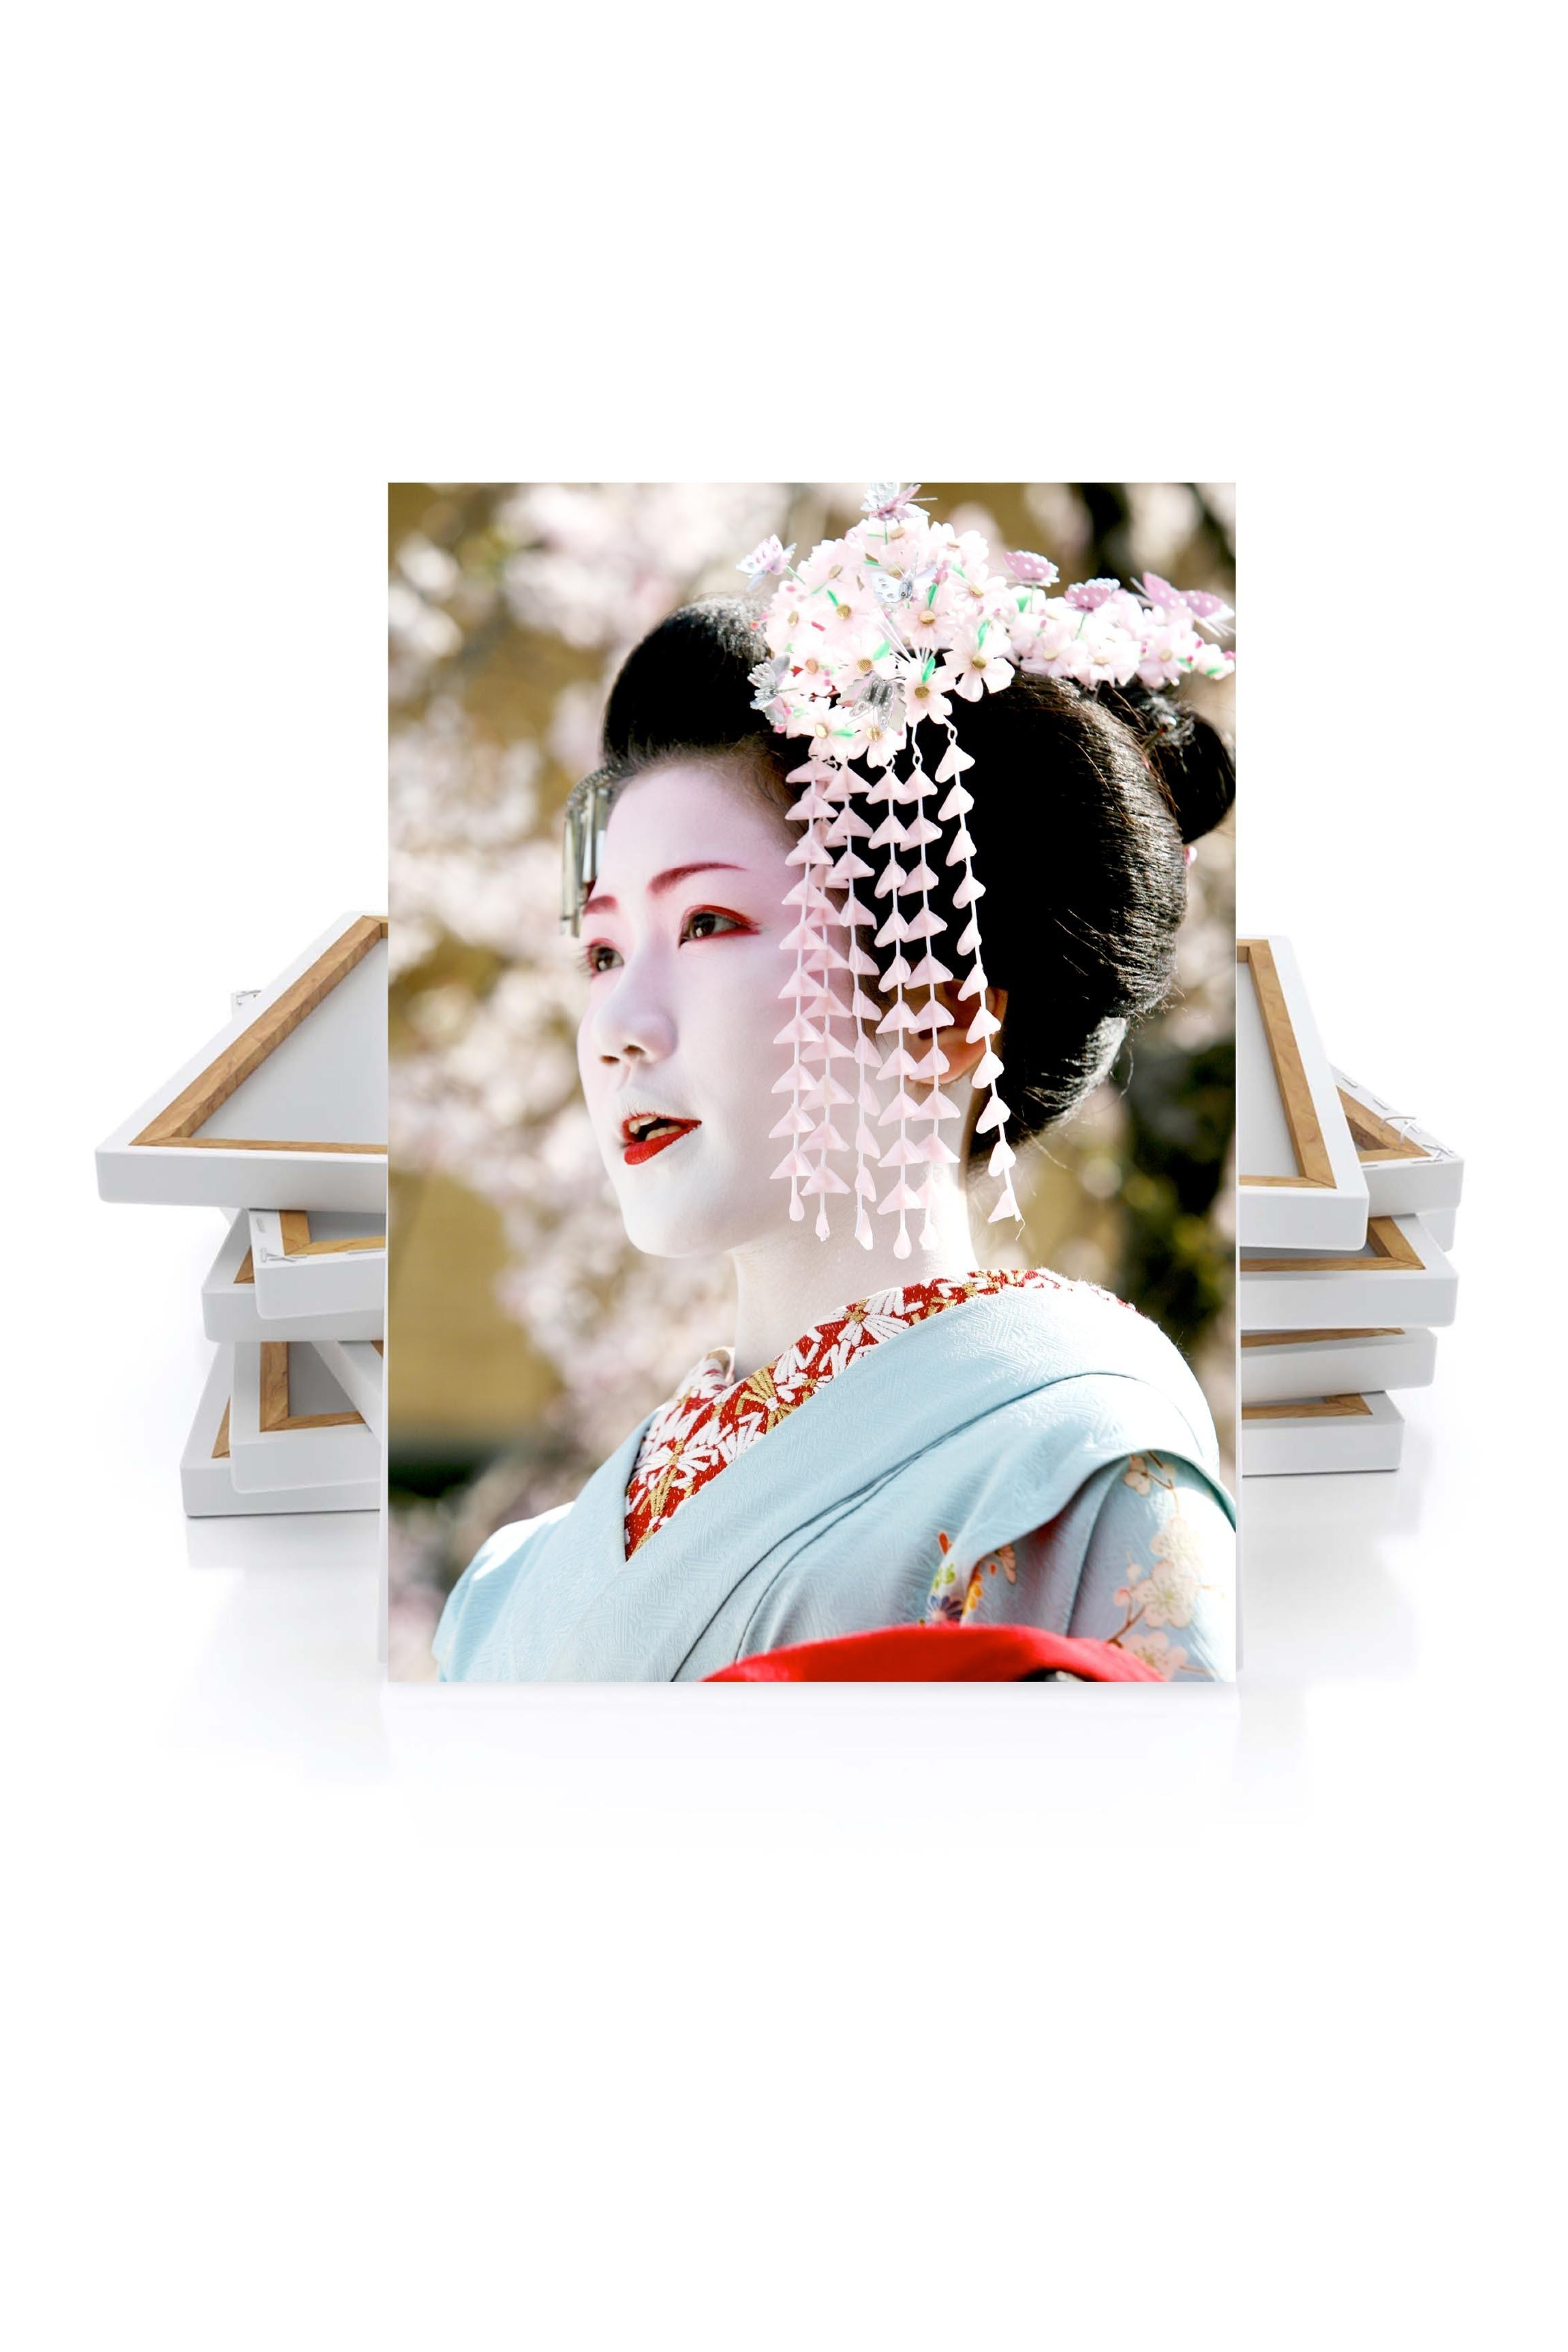 Canvas Geisha – Japanemmanuel Catteau – Canvas – Wall Art With Regard To Geisha Canvas Wall Art (Image 4 of 20)